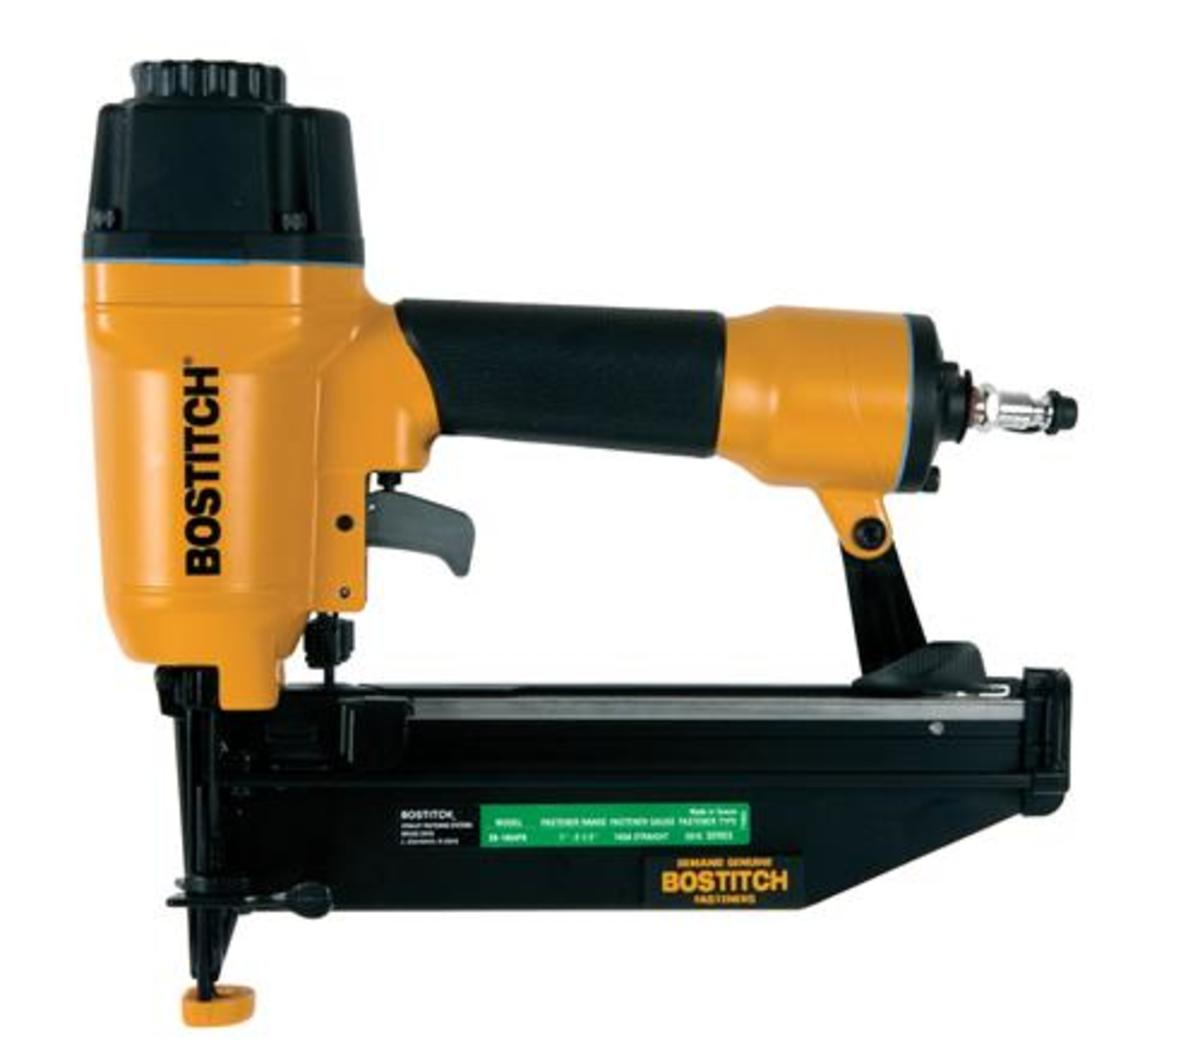 Bostitch 16-gauge straight finish air nailer kit